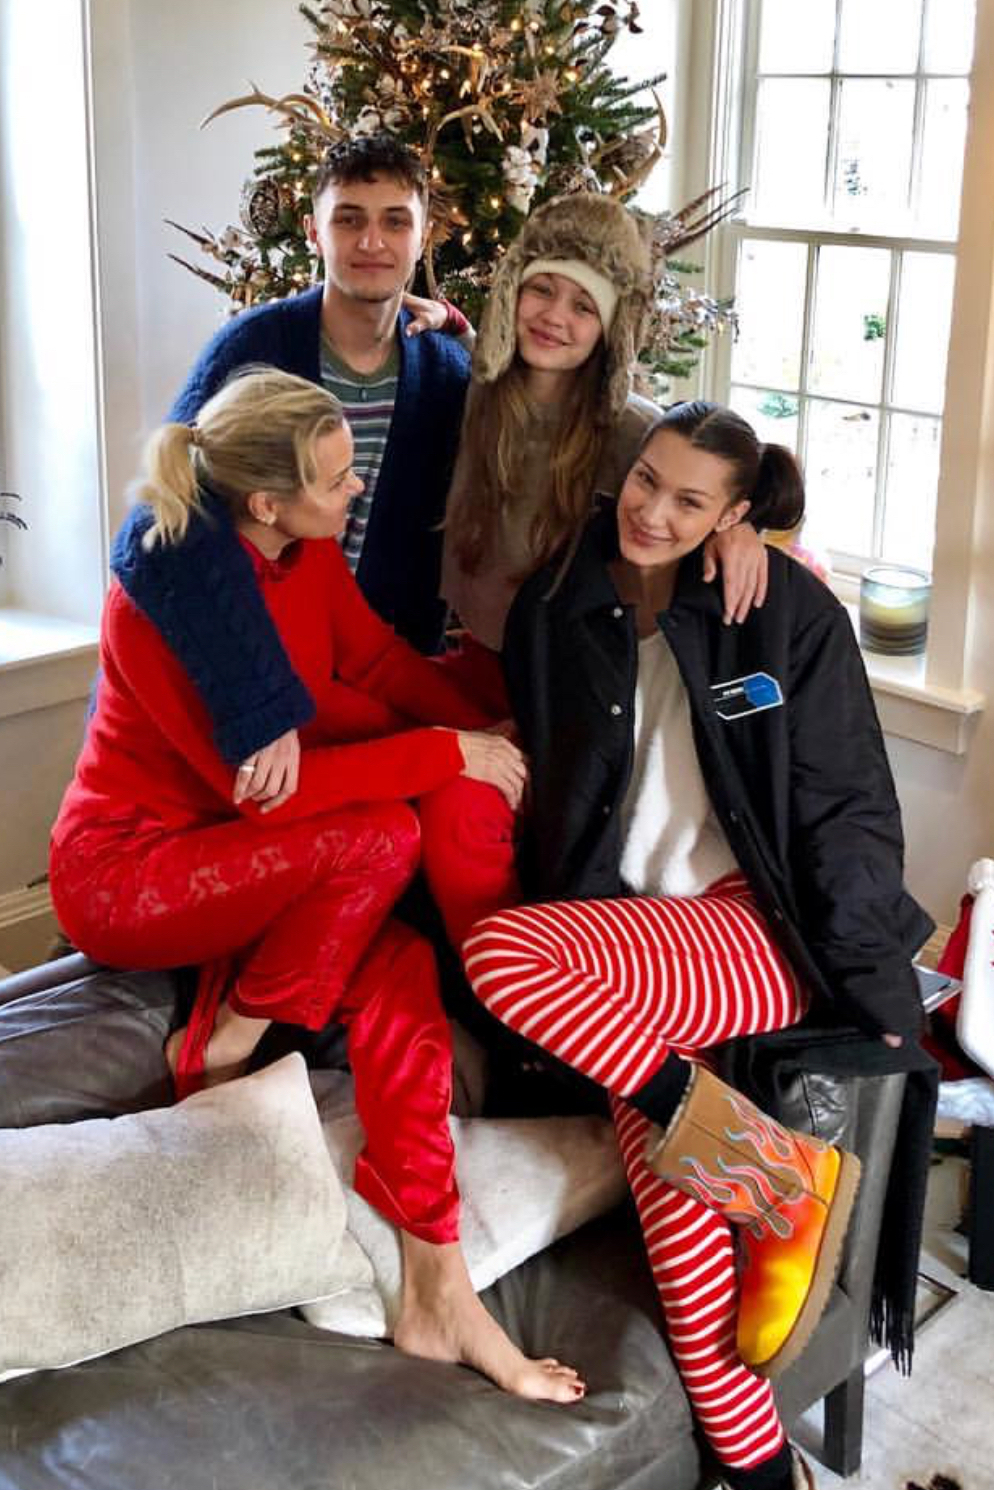 shoes ugg boots bella hadid gigi hadid hadid sisters celebrity model off-duty instagram christmas holiday season